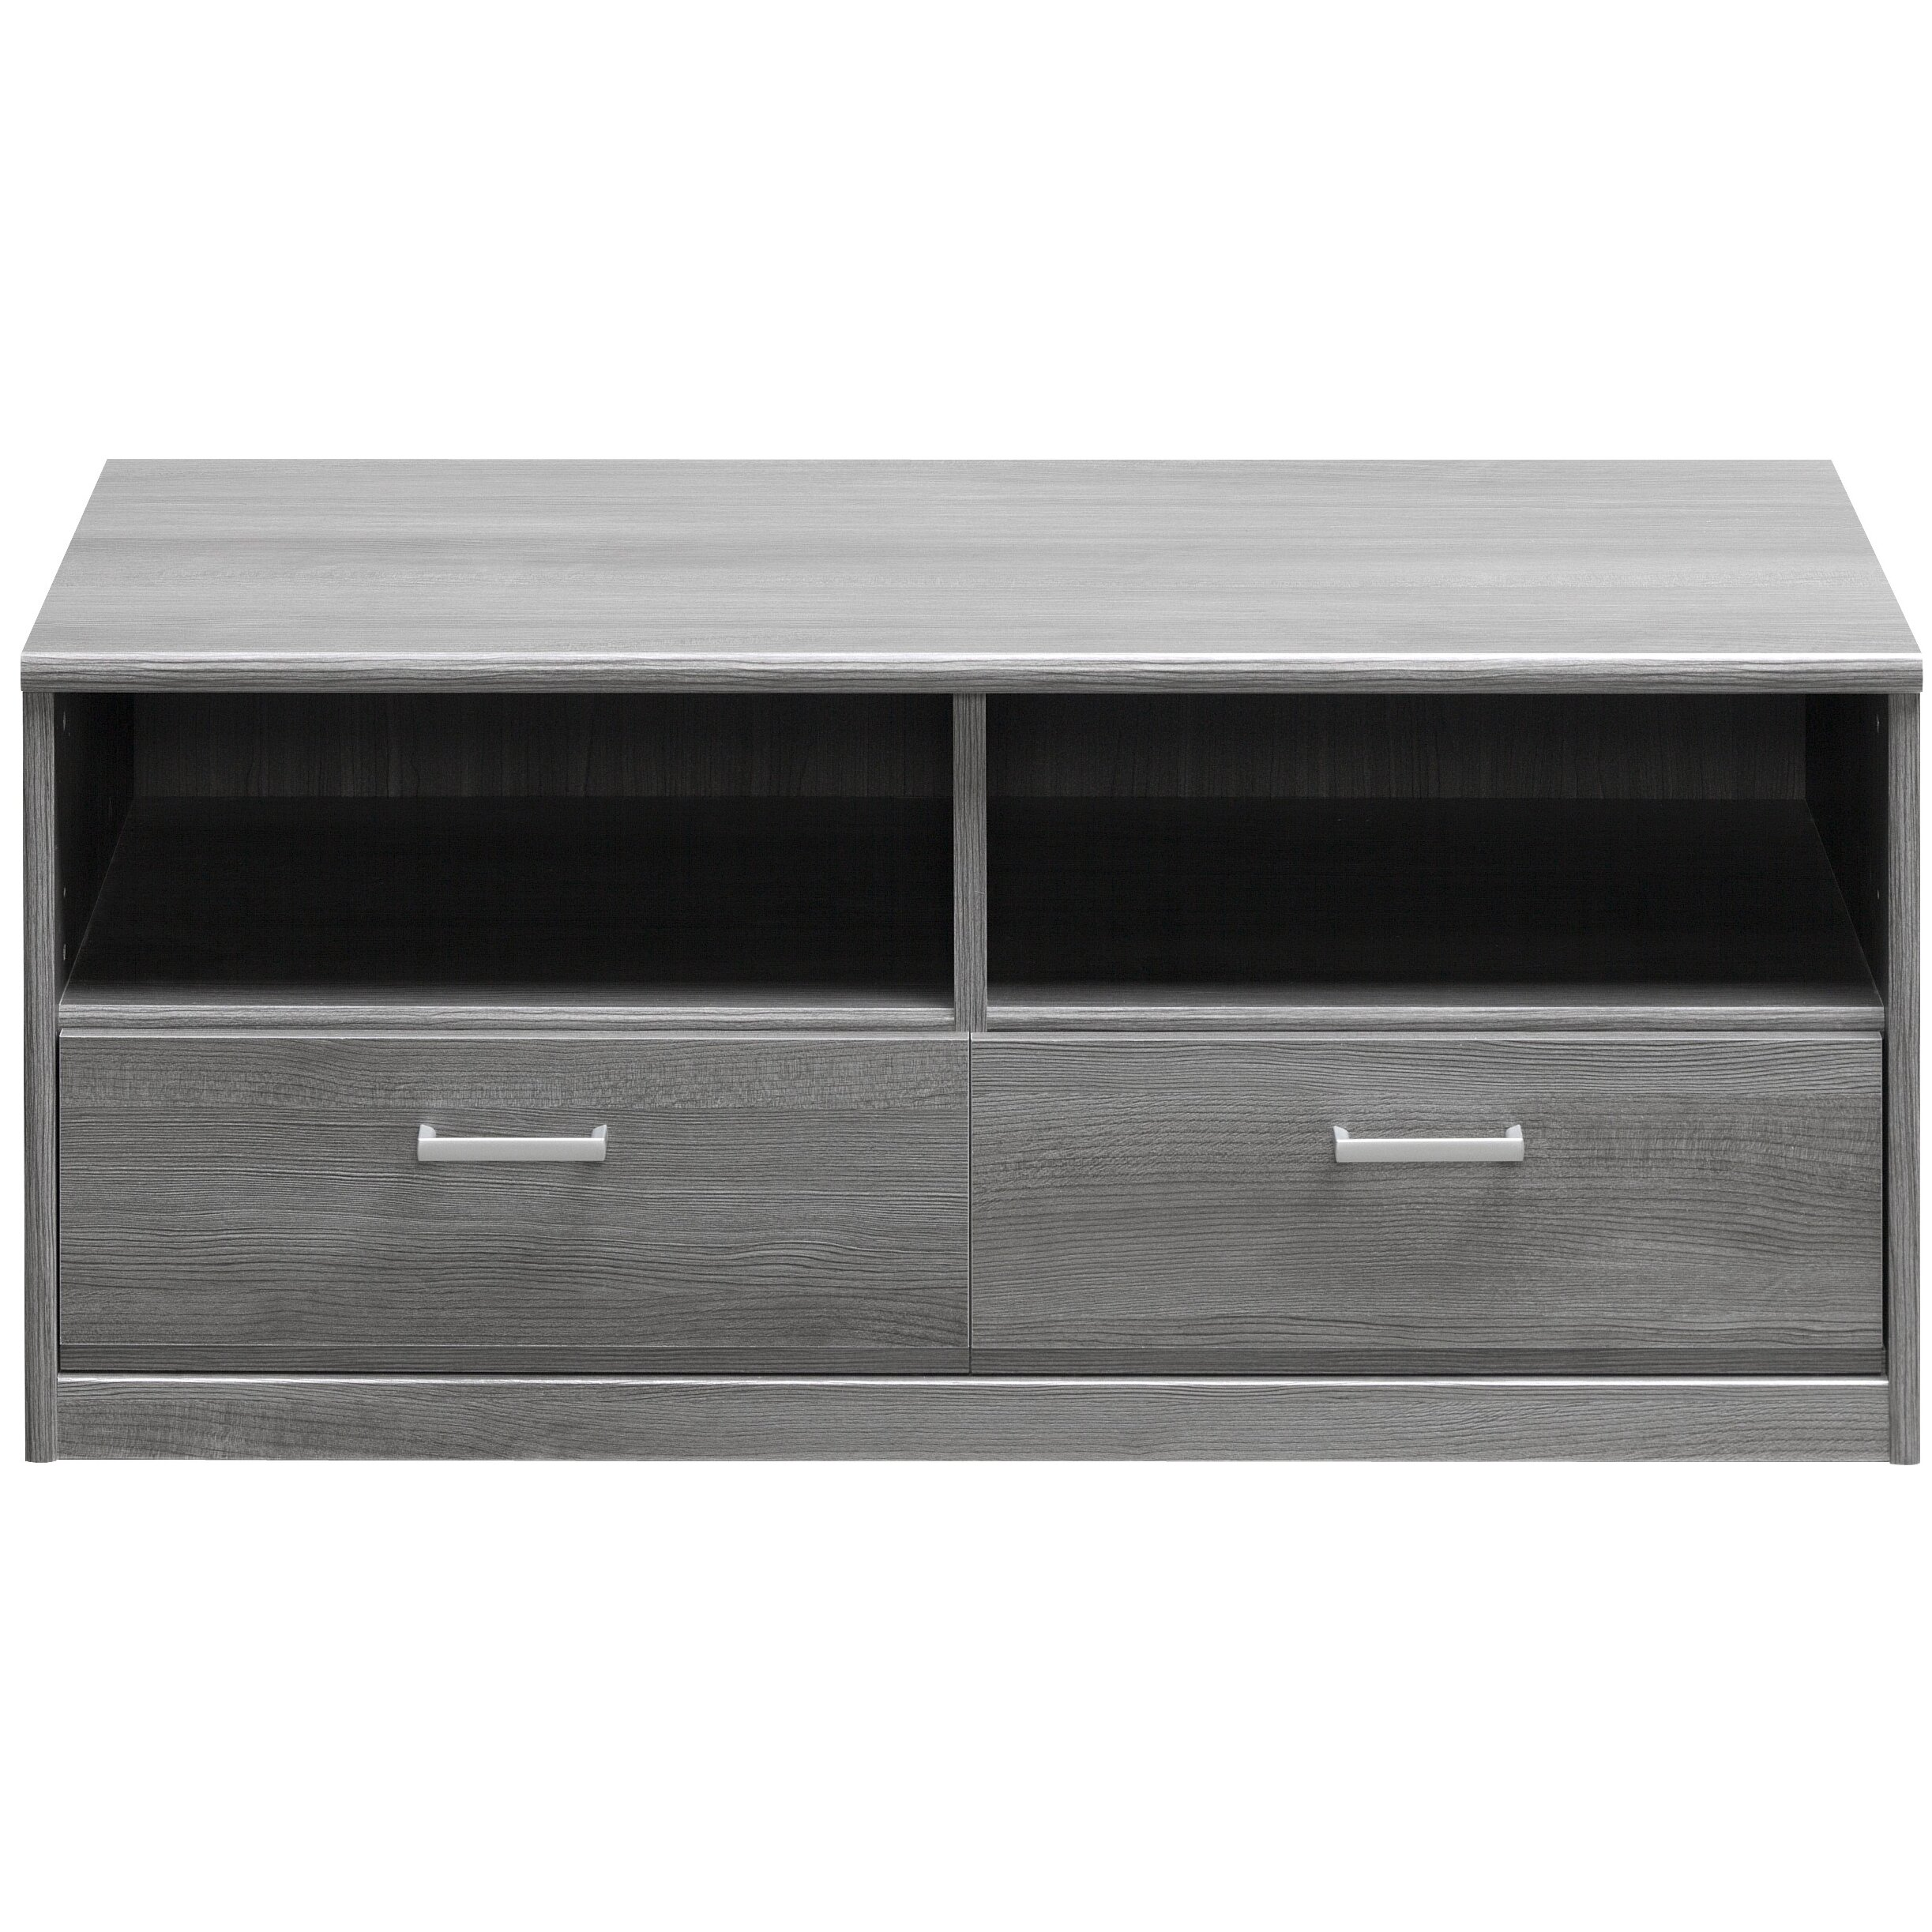 cs schmal tv schrank reviews von cs schmal. Black Bedroom Furniture Sets. Home Design Ideas